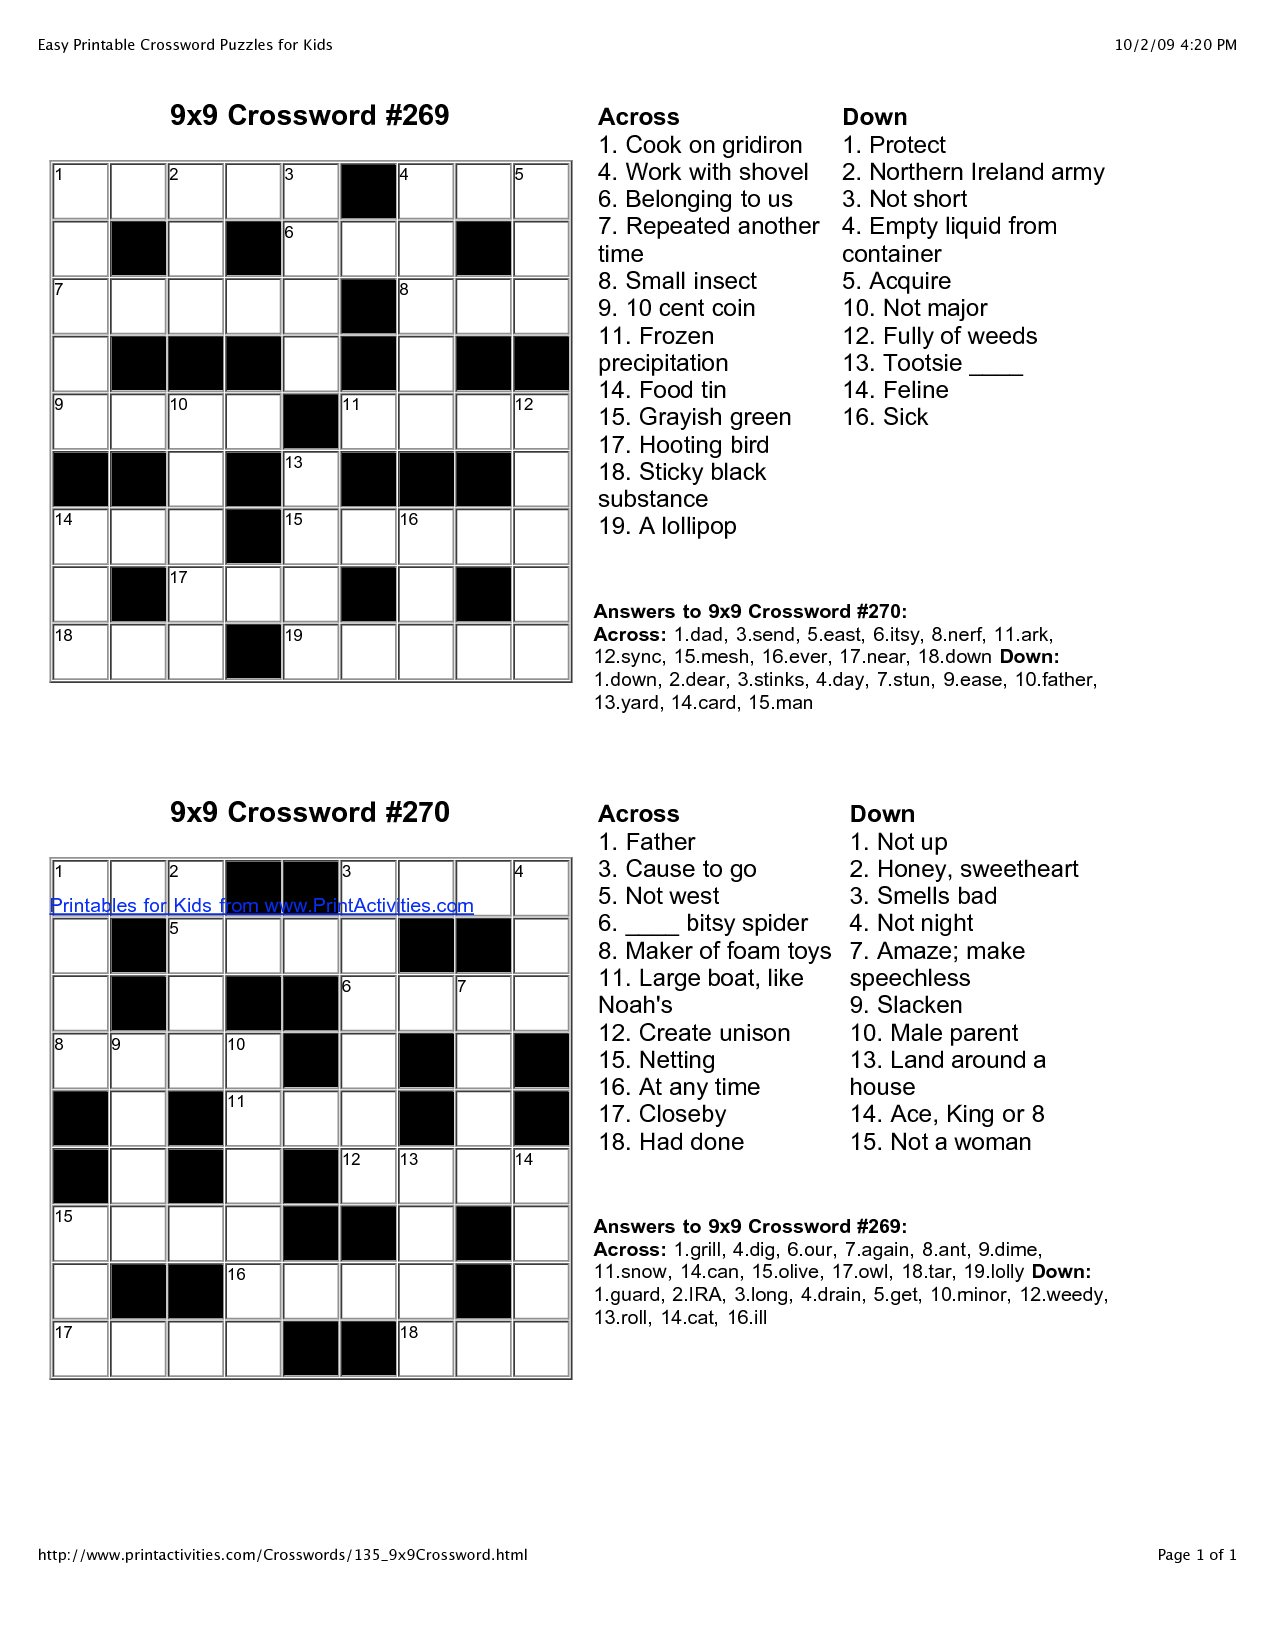 Easy Crossword Puzzle Worksheets Printable Worksheets And Activities For Teachers Parents Tutors And Homeschool Families,Buckwheat Plant